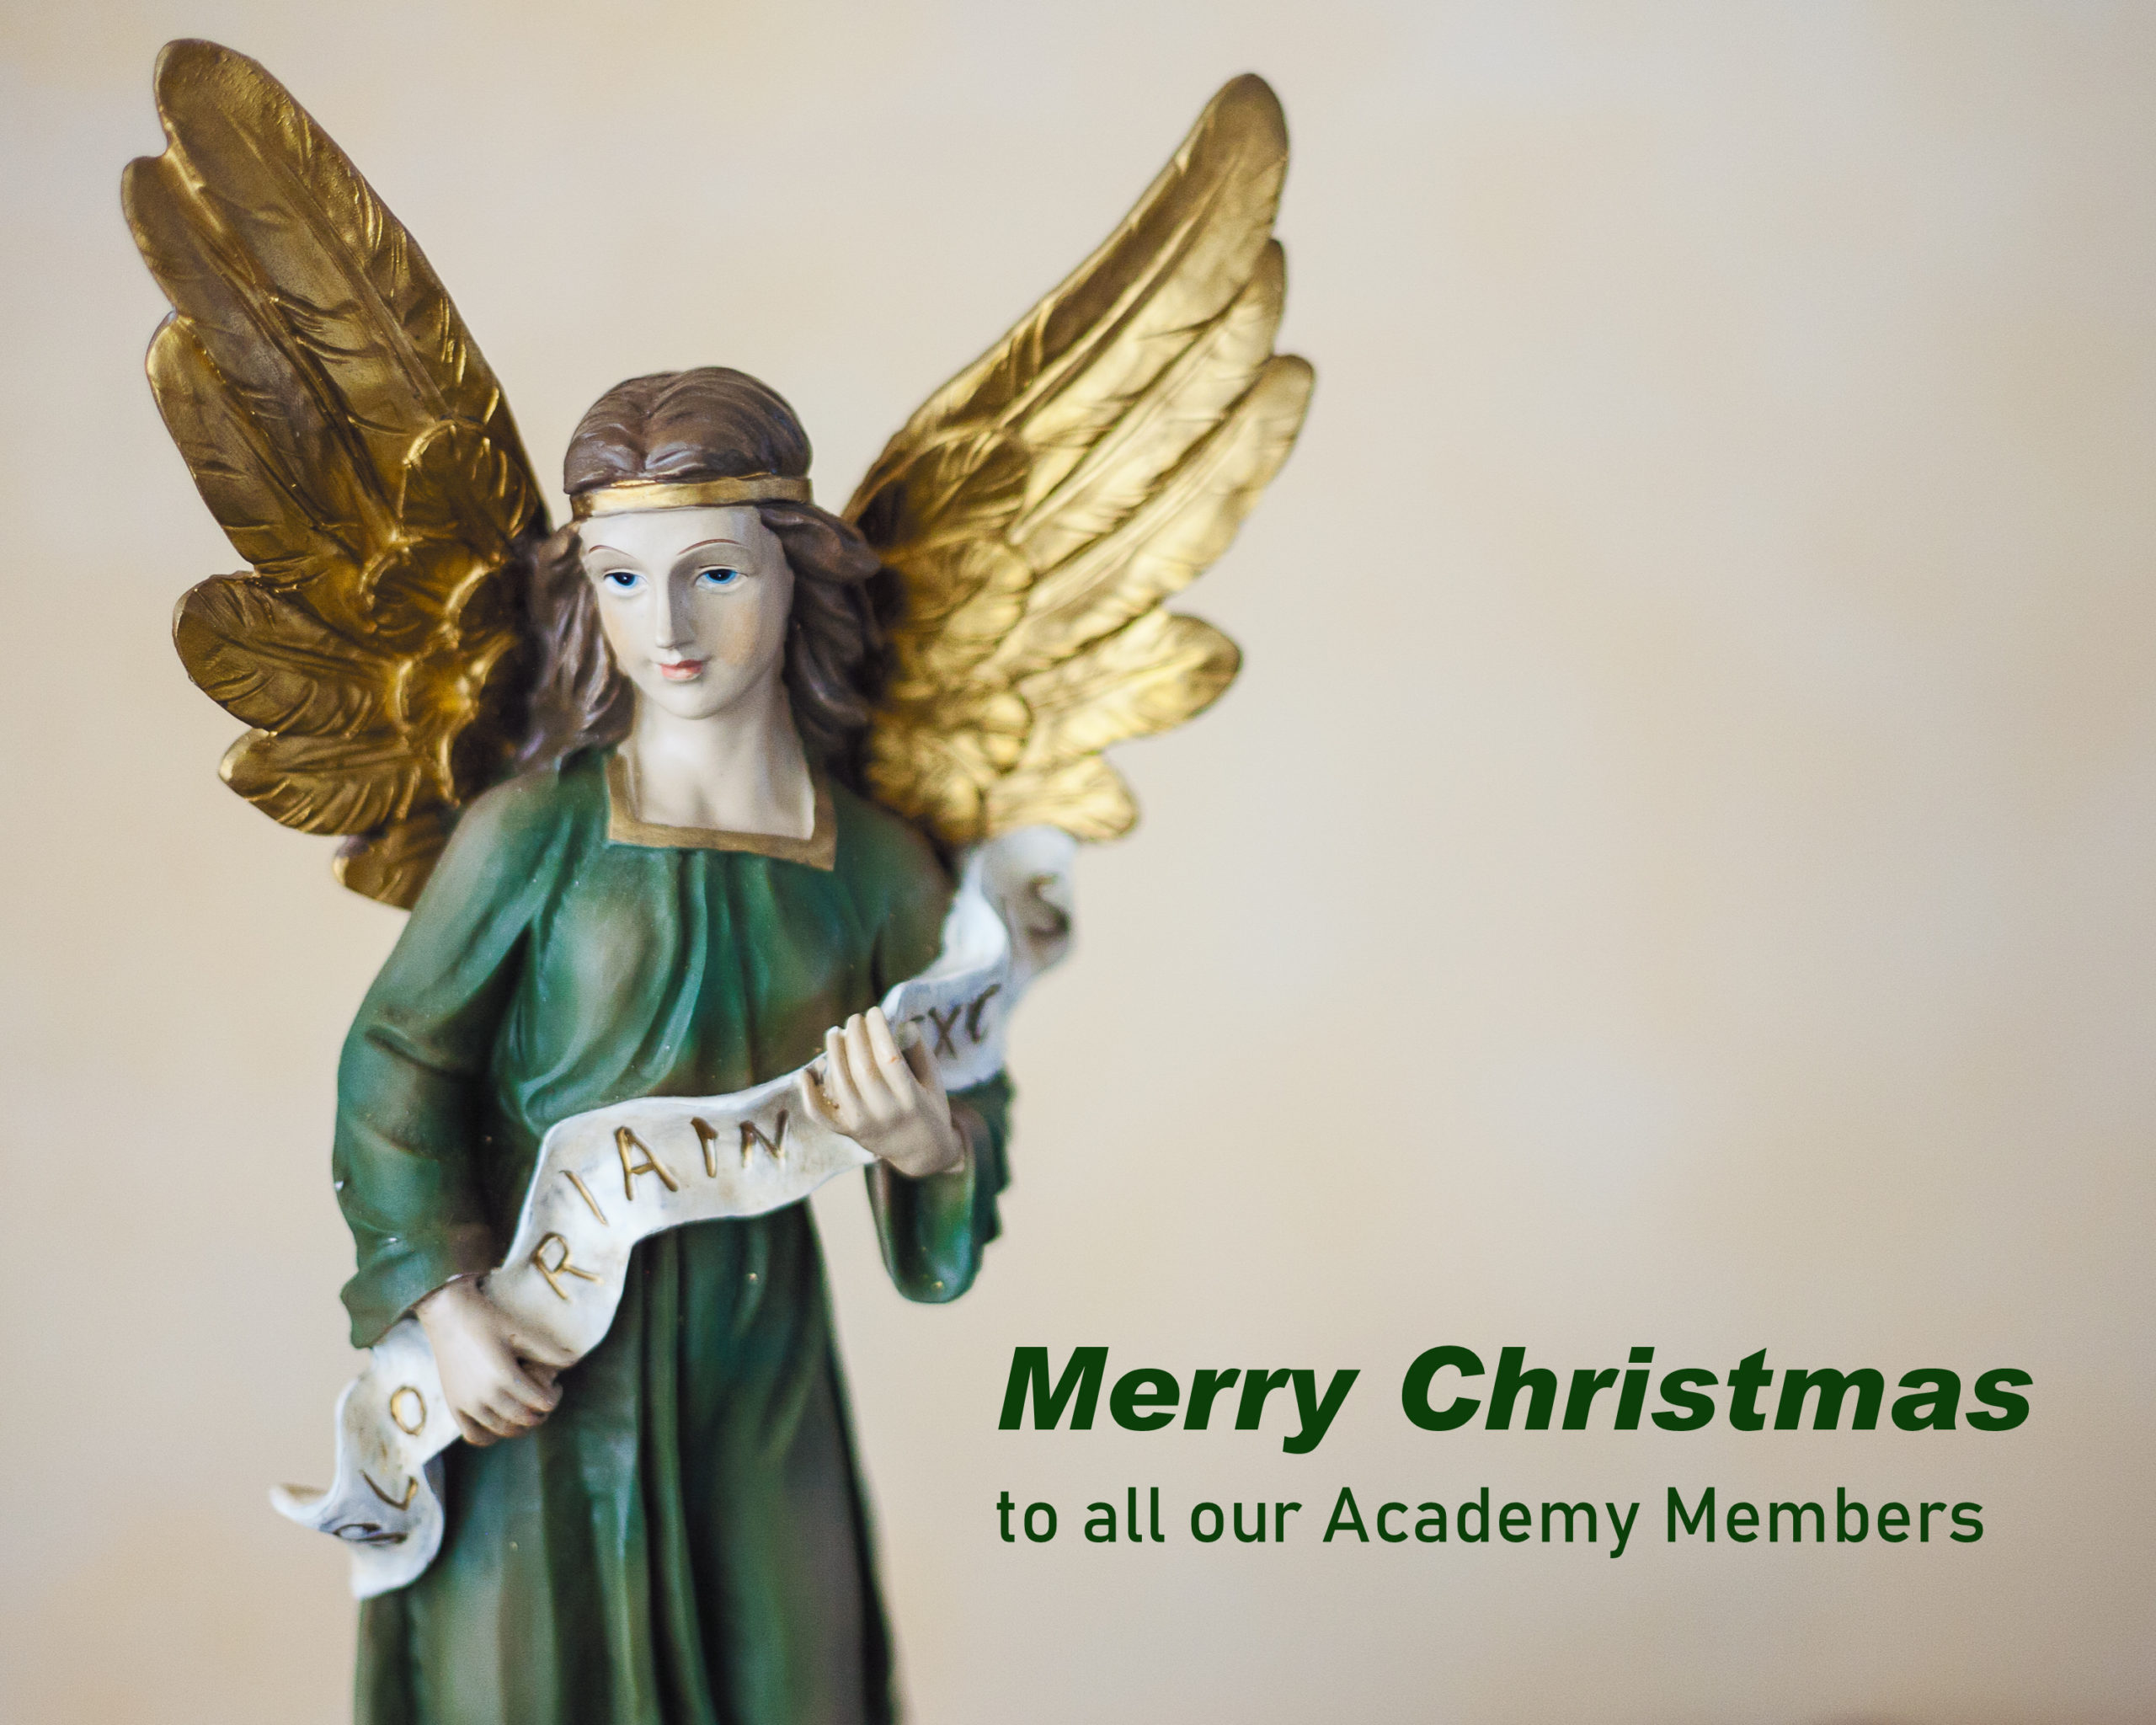 ACADEMY BITE: Christmas Ideas #7 – Merry Christmas